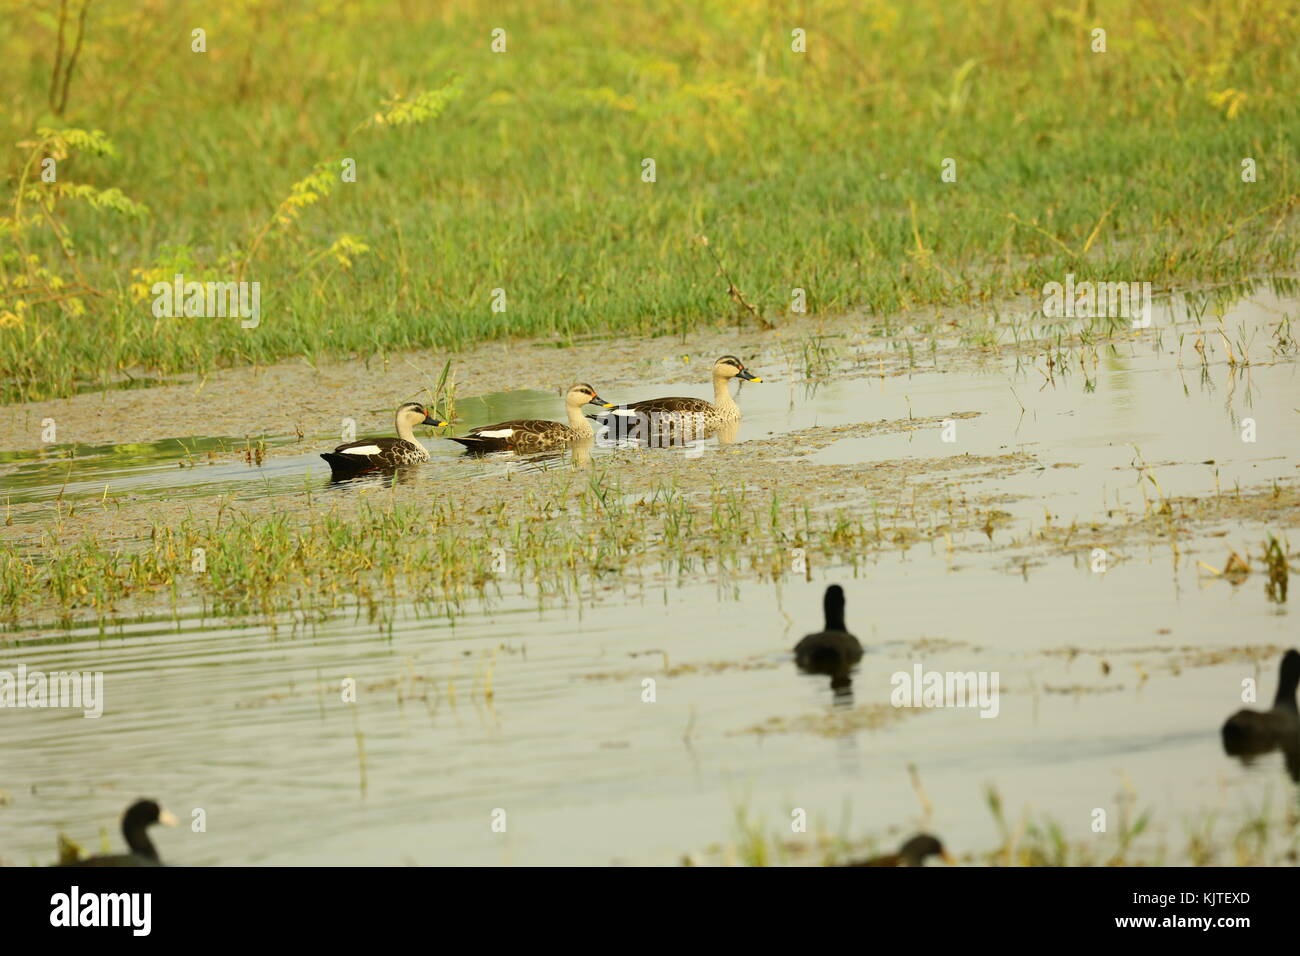 The Indian spot-billed duck is a large dabbling duck which is a non-migratory breeding duck throughout freshwater - Stock Image